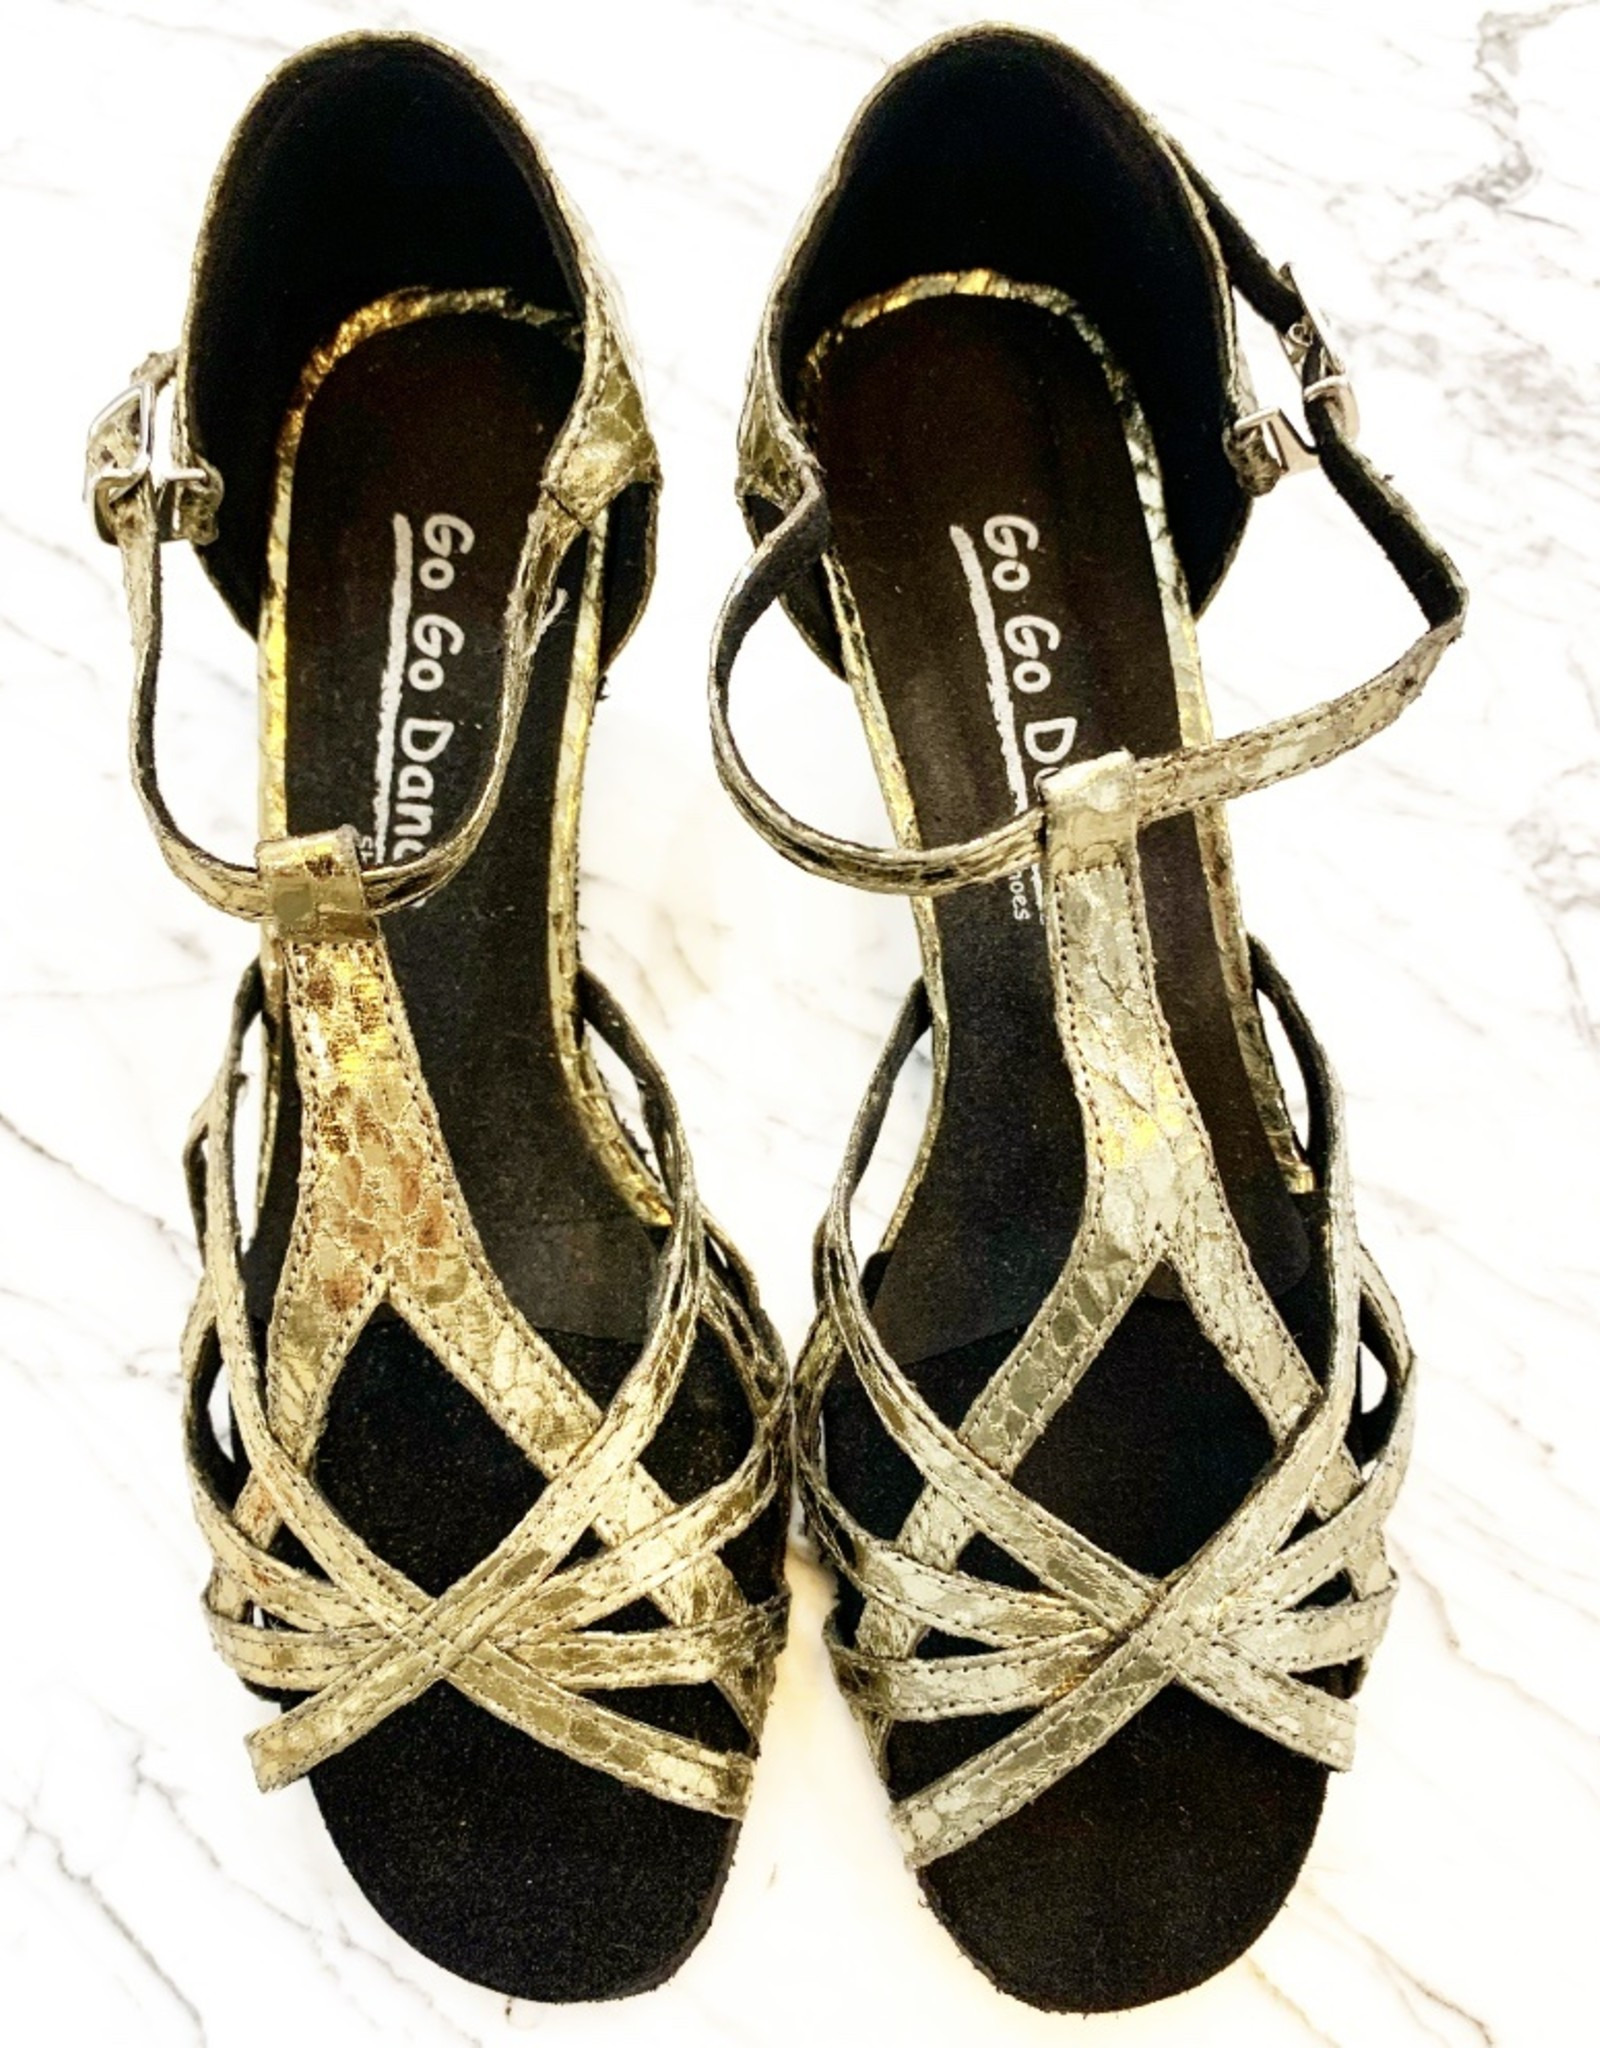 T-STRAP METALLIC BALLROOM DANCE SHOES (GO9914)